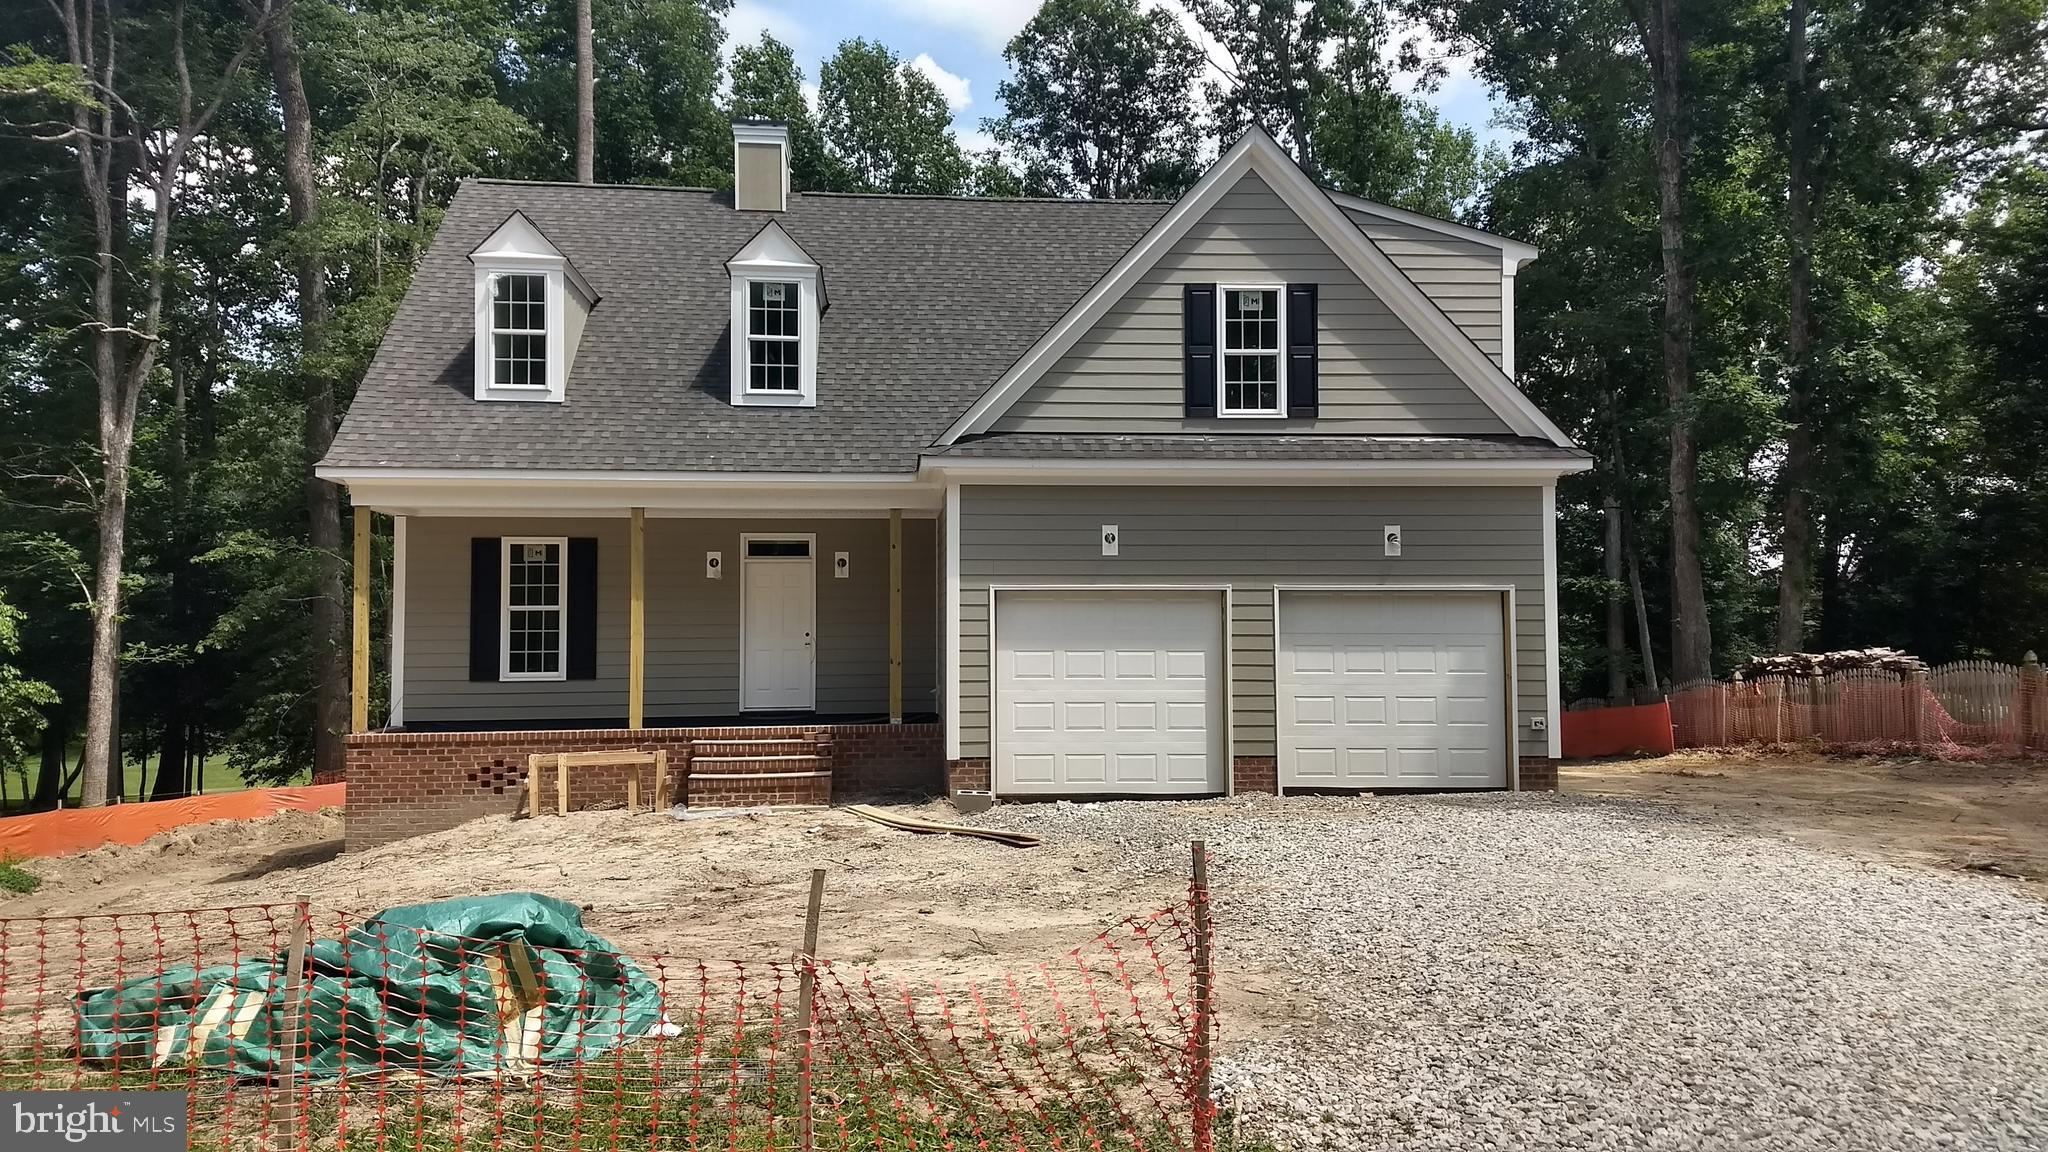 4 CLARKE COURT, WILLIAMSBURG, VA 23188